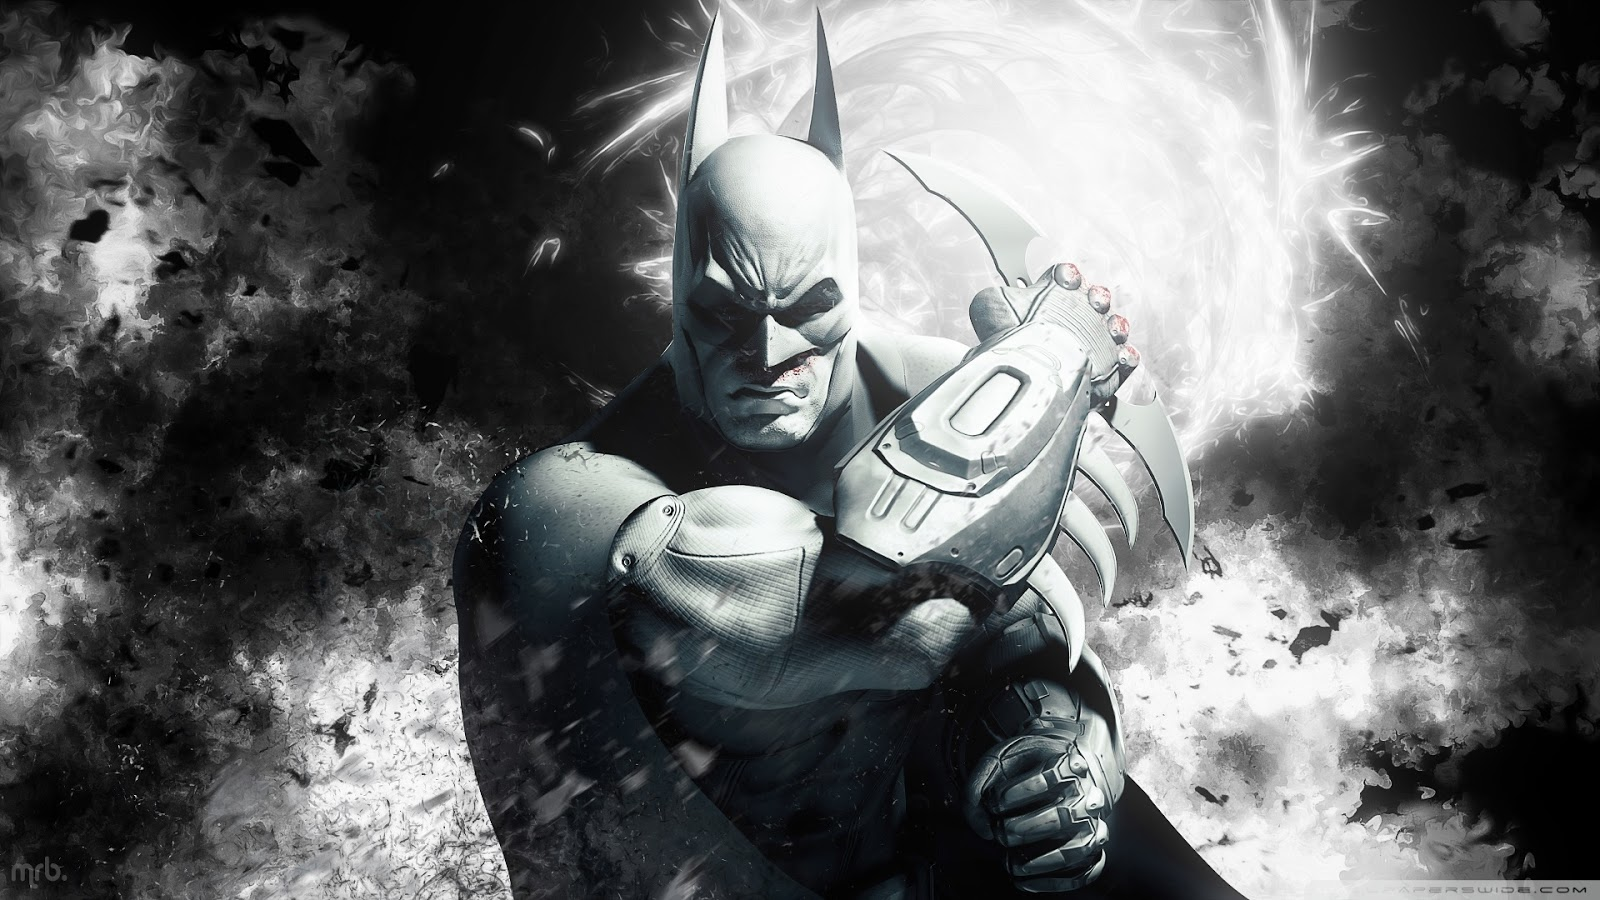 Wallpapers HD: Batman Fondos De Pantalla HD- Wallpapers De